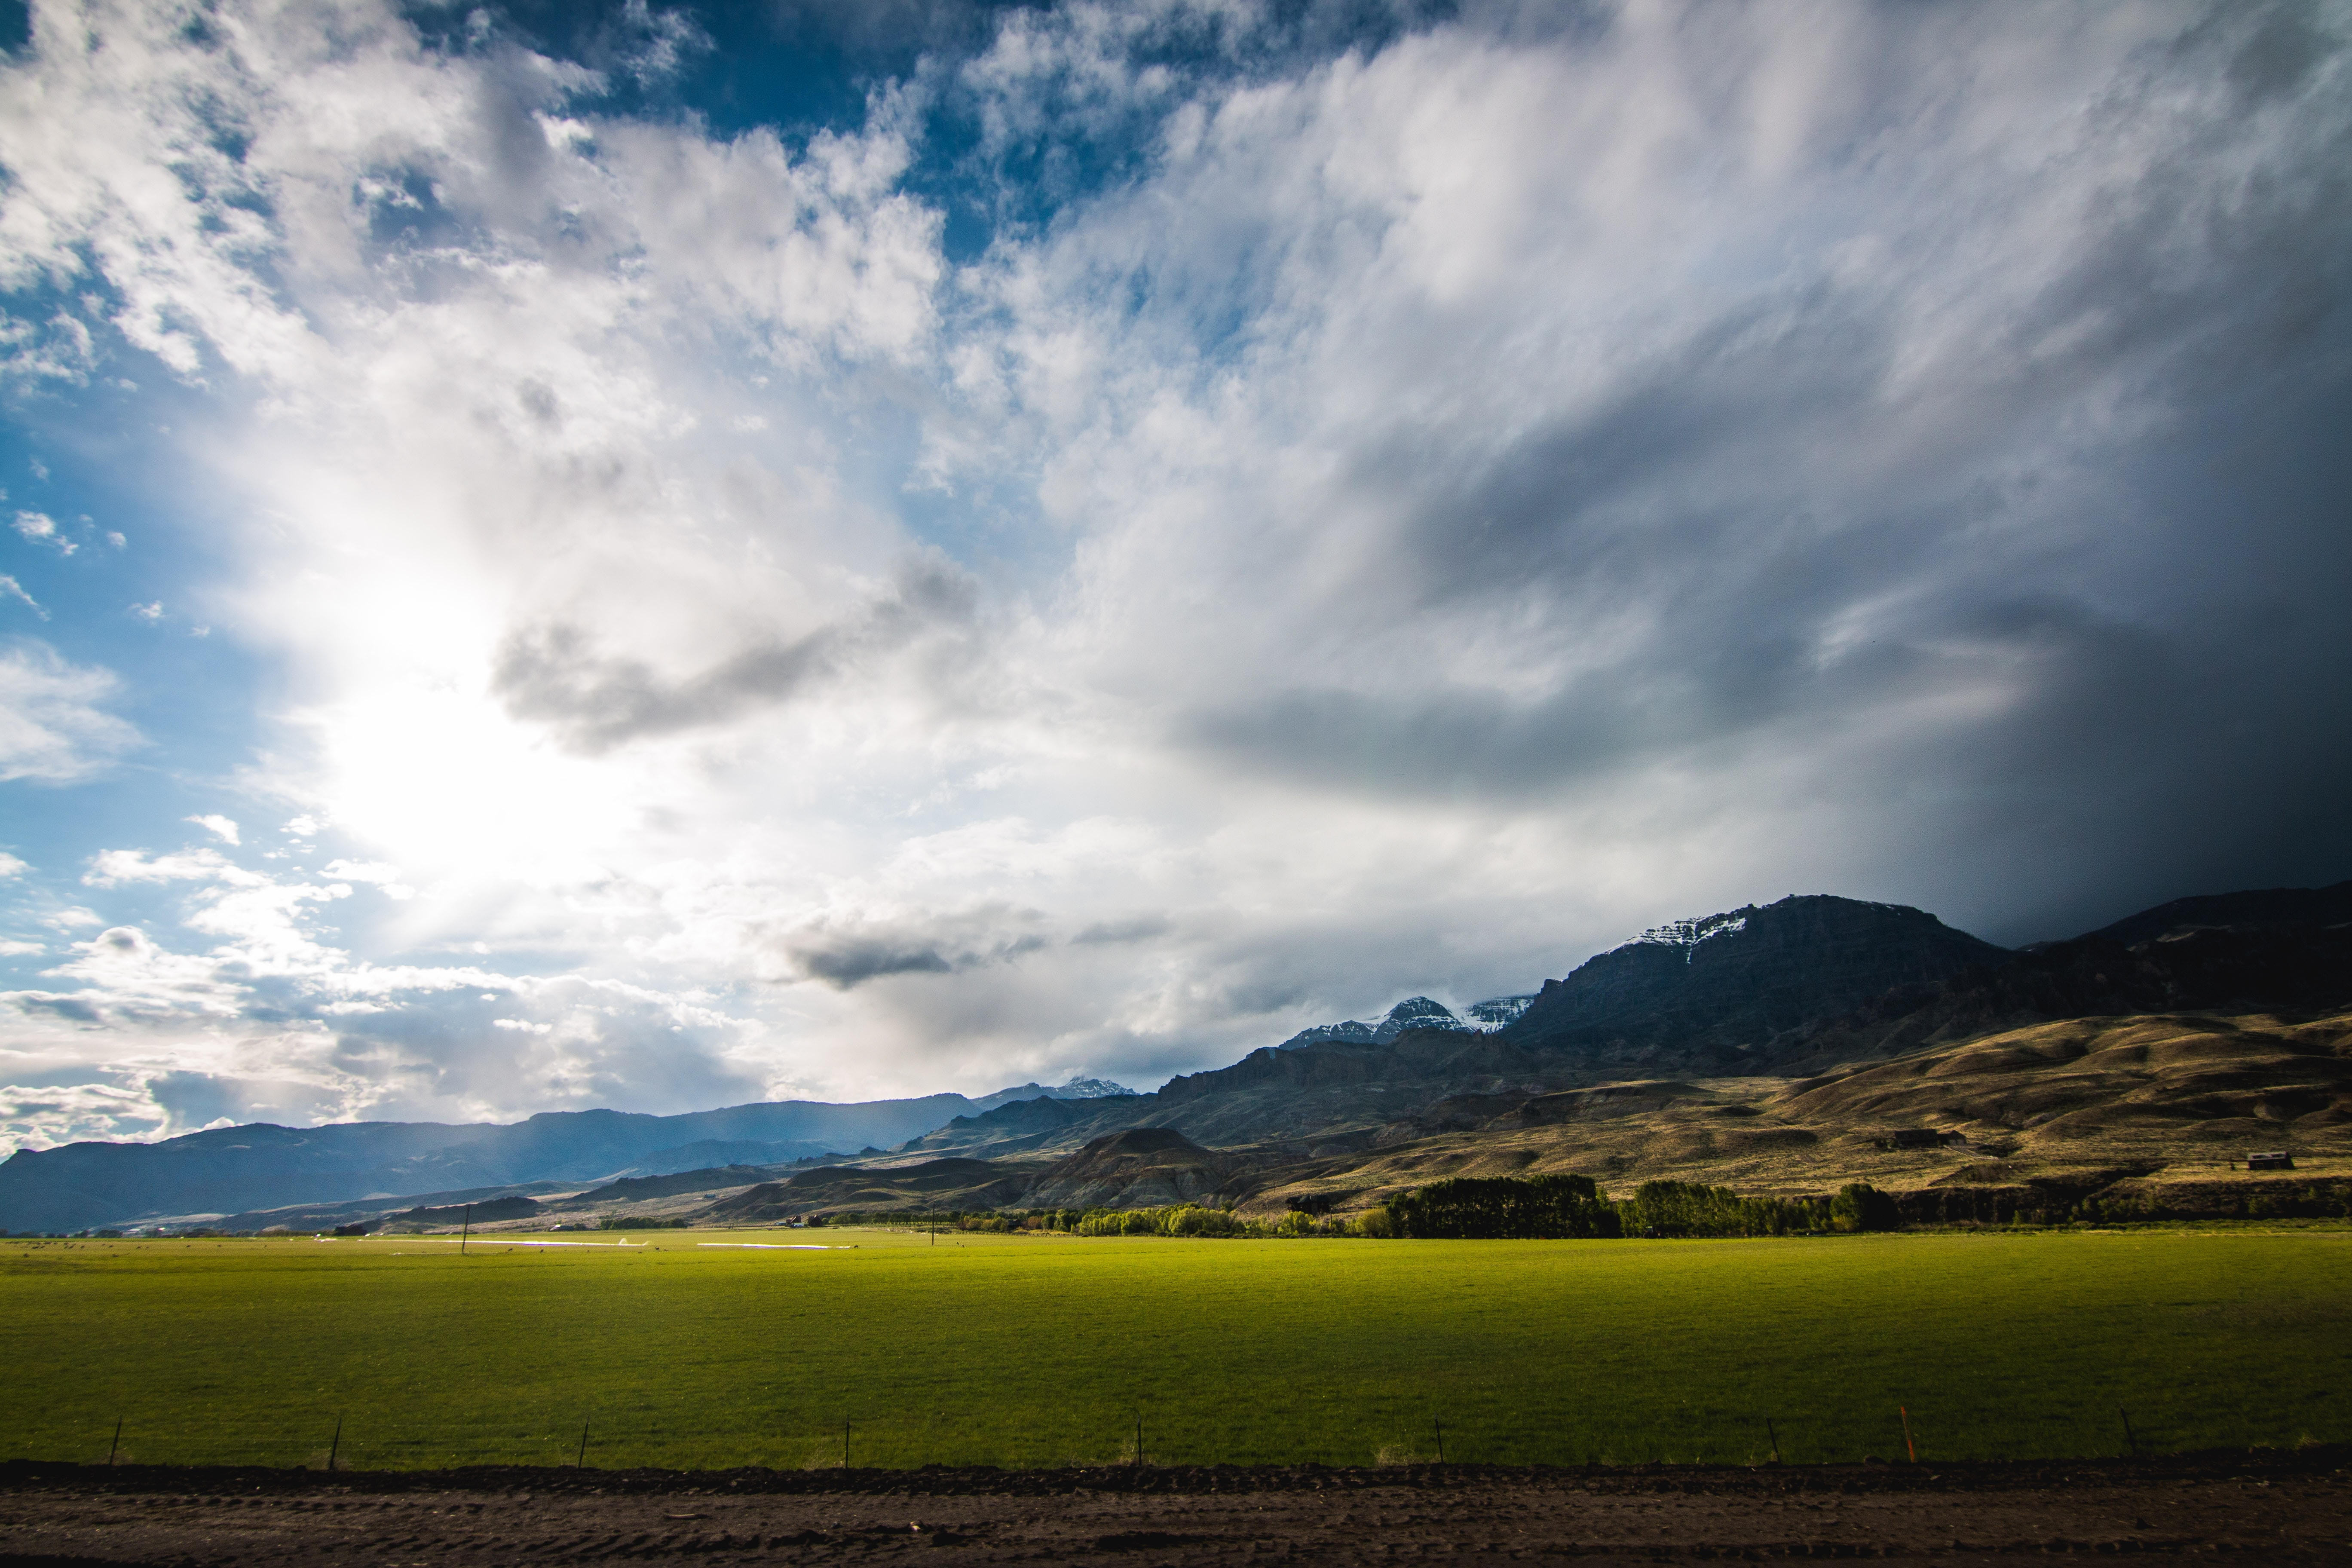 Tranquil pastures in a rural valley below snowy mountains on the horizon